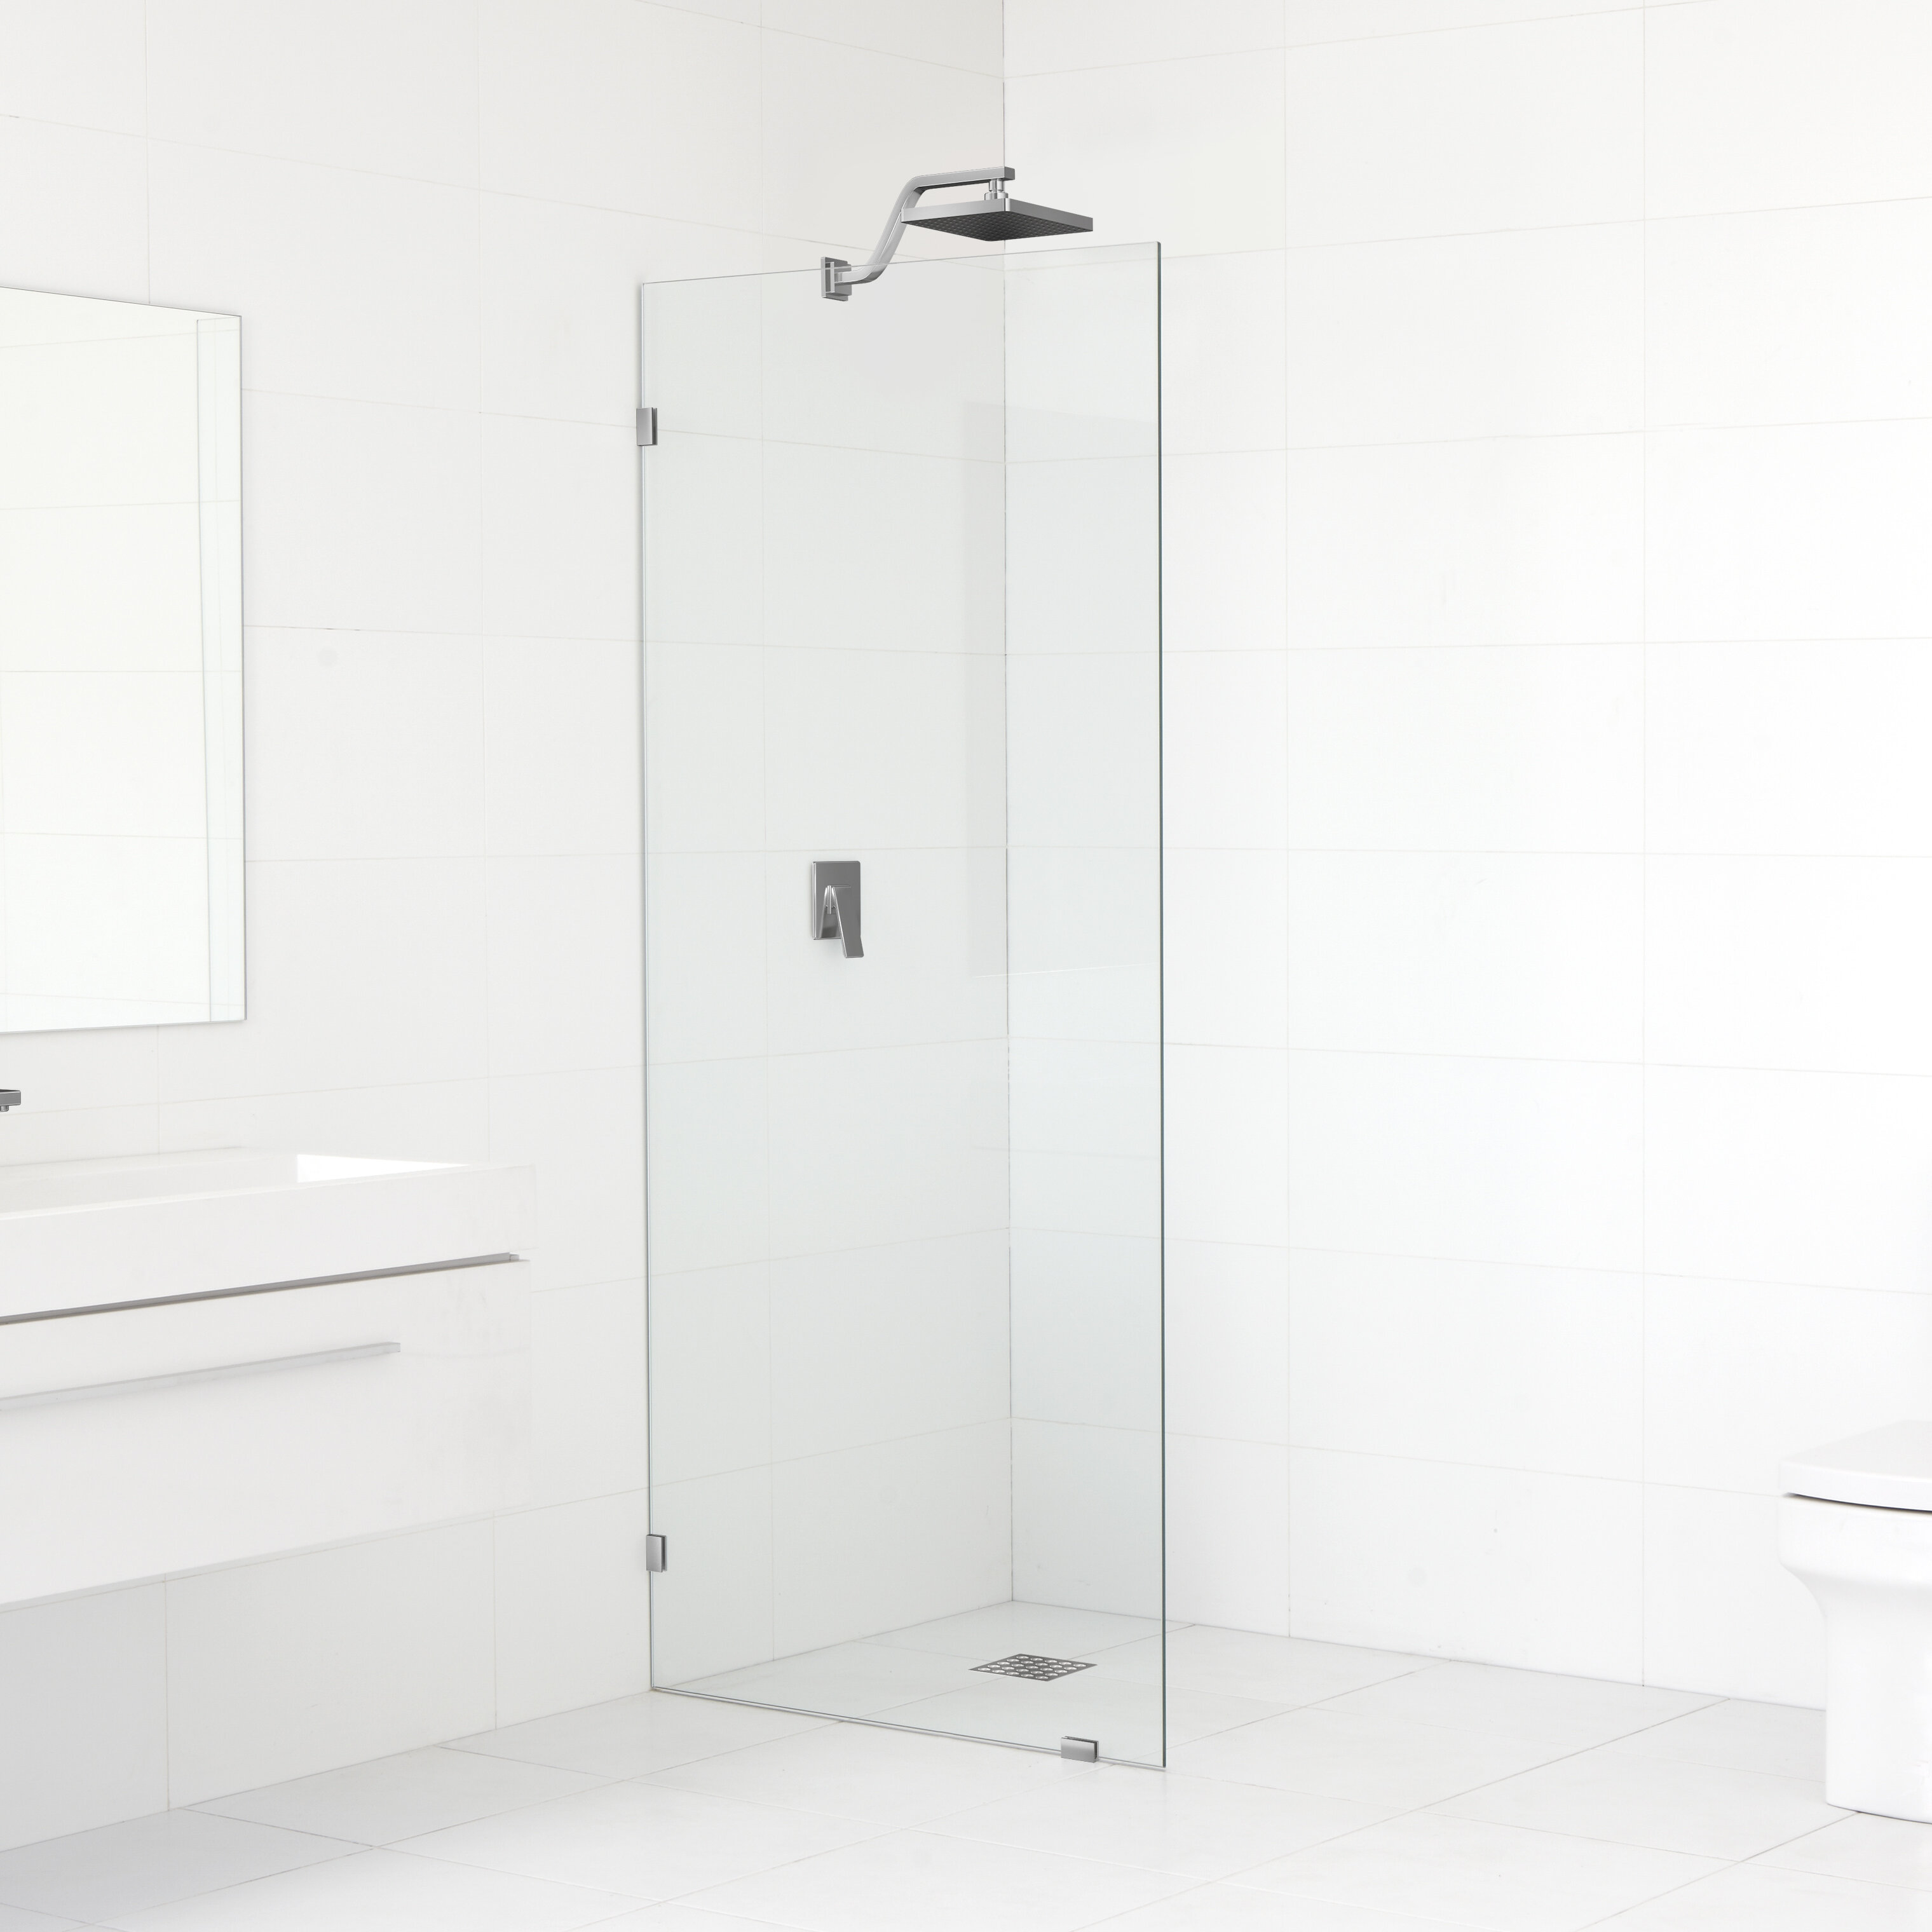 can i install glass shower panel